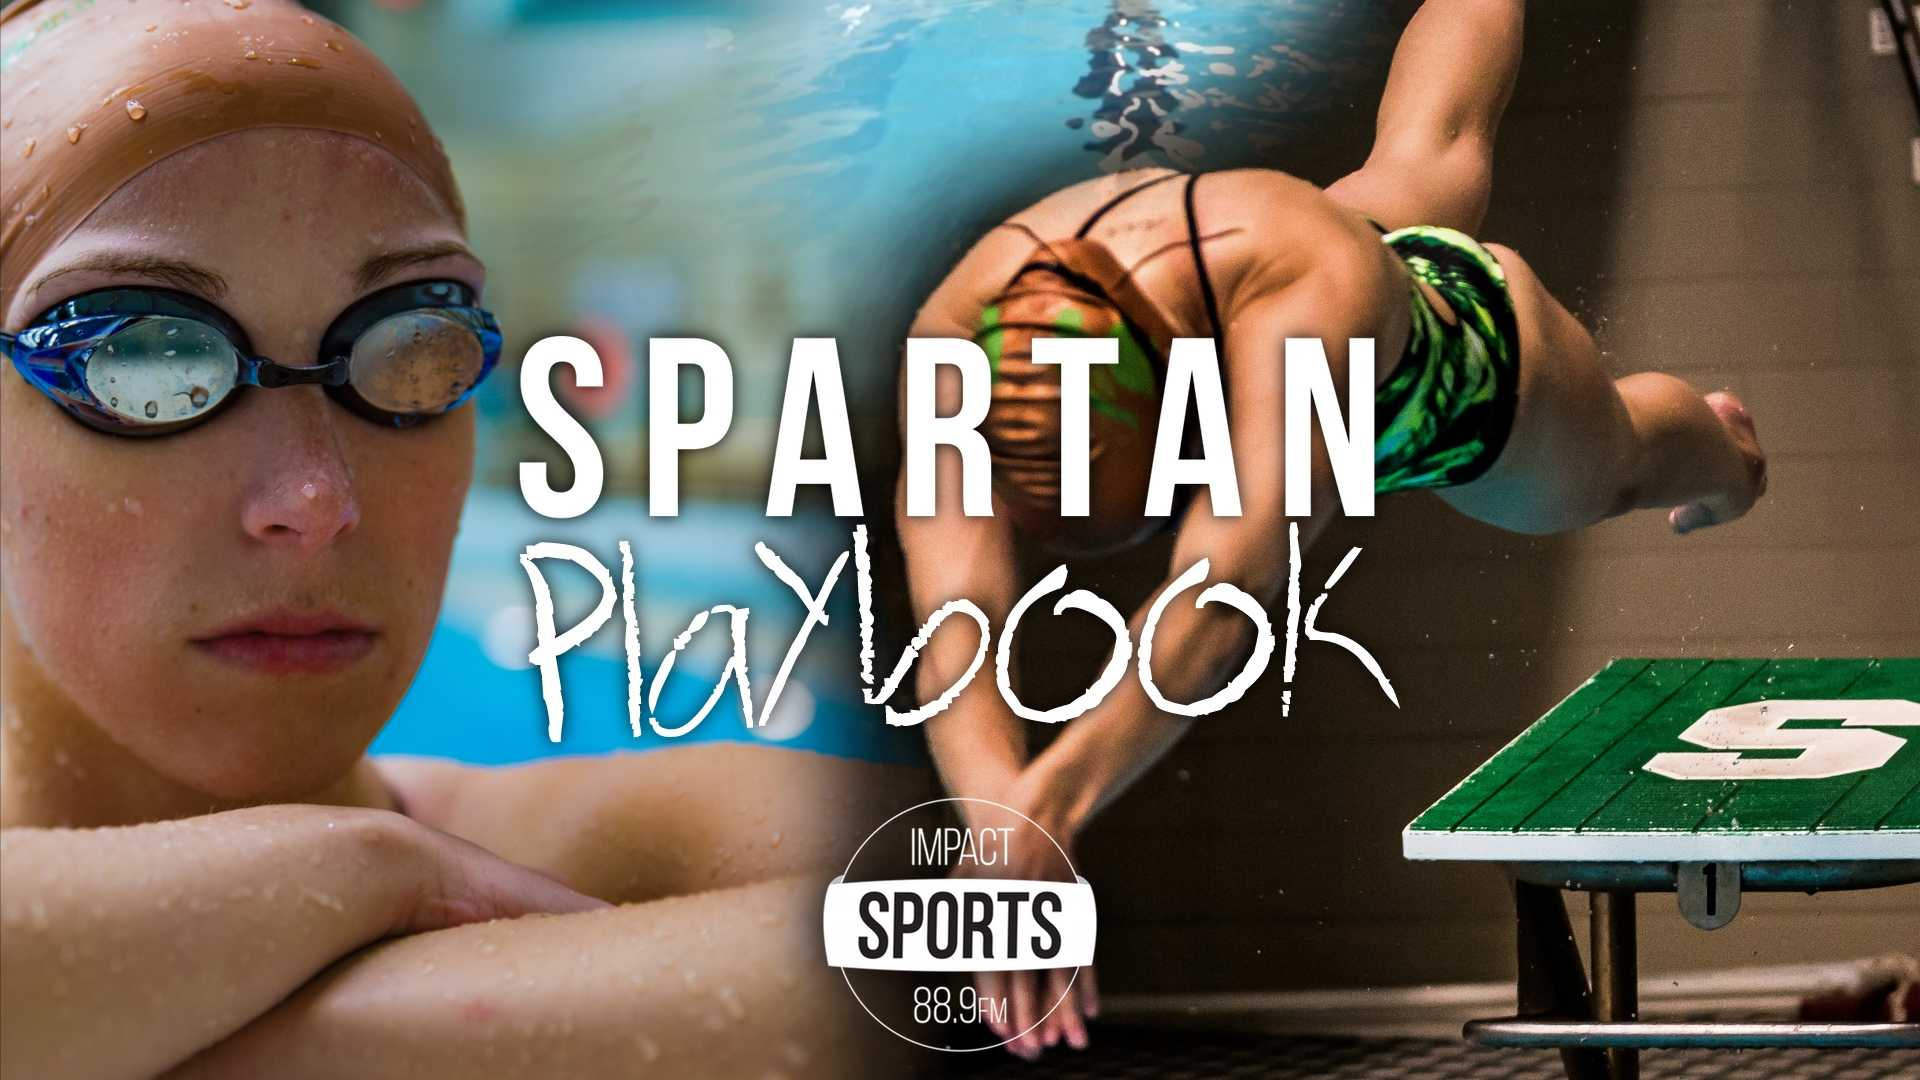 Spartan Playbook: Swimming - Shelby Lacy